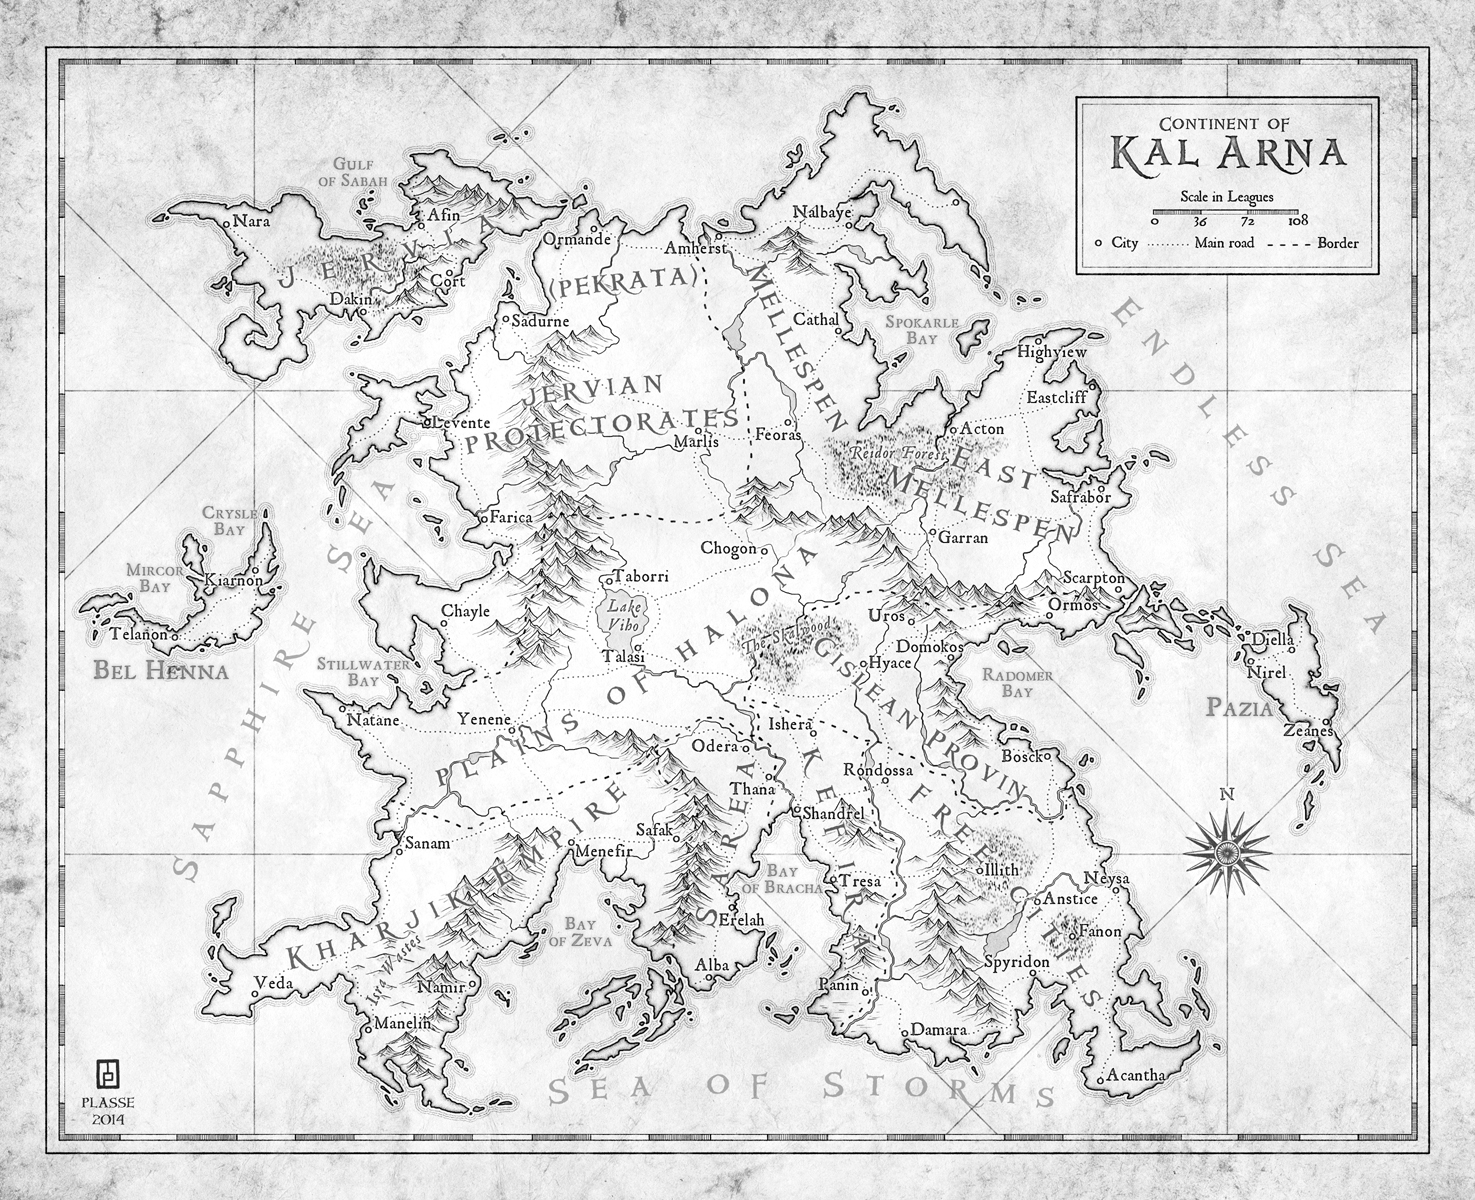 """Kal Arna  - commission for writer Matt Karlov  � 2014 - All rights reserved  """"Max took my rough sketches and turned them into a beautiful set of maps.  He was very professional and very accommodating of the various tweaks and adjustments I requested to get the maps just right.  I'm delighted with the end result, and I plan to hire Max again whenever I need any new maps."""" M.Karlov"""